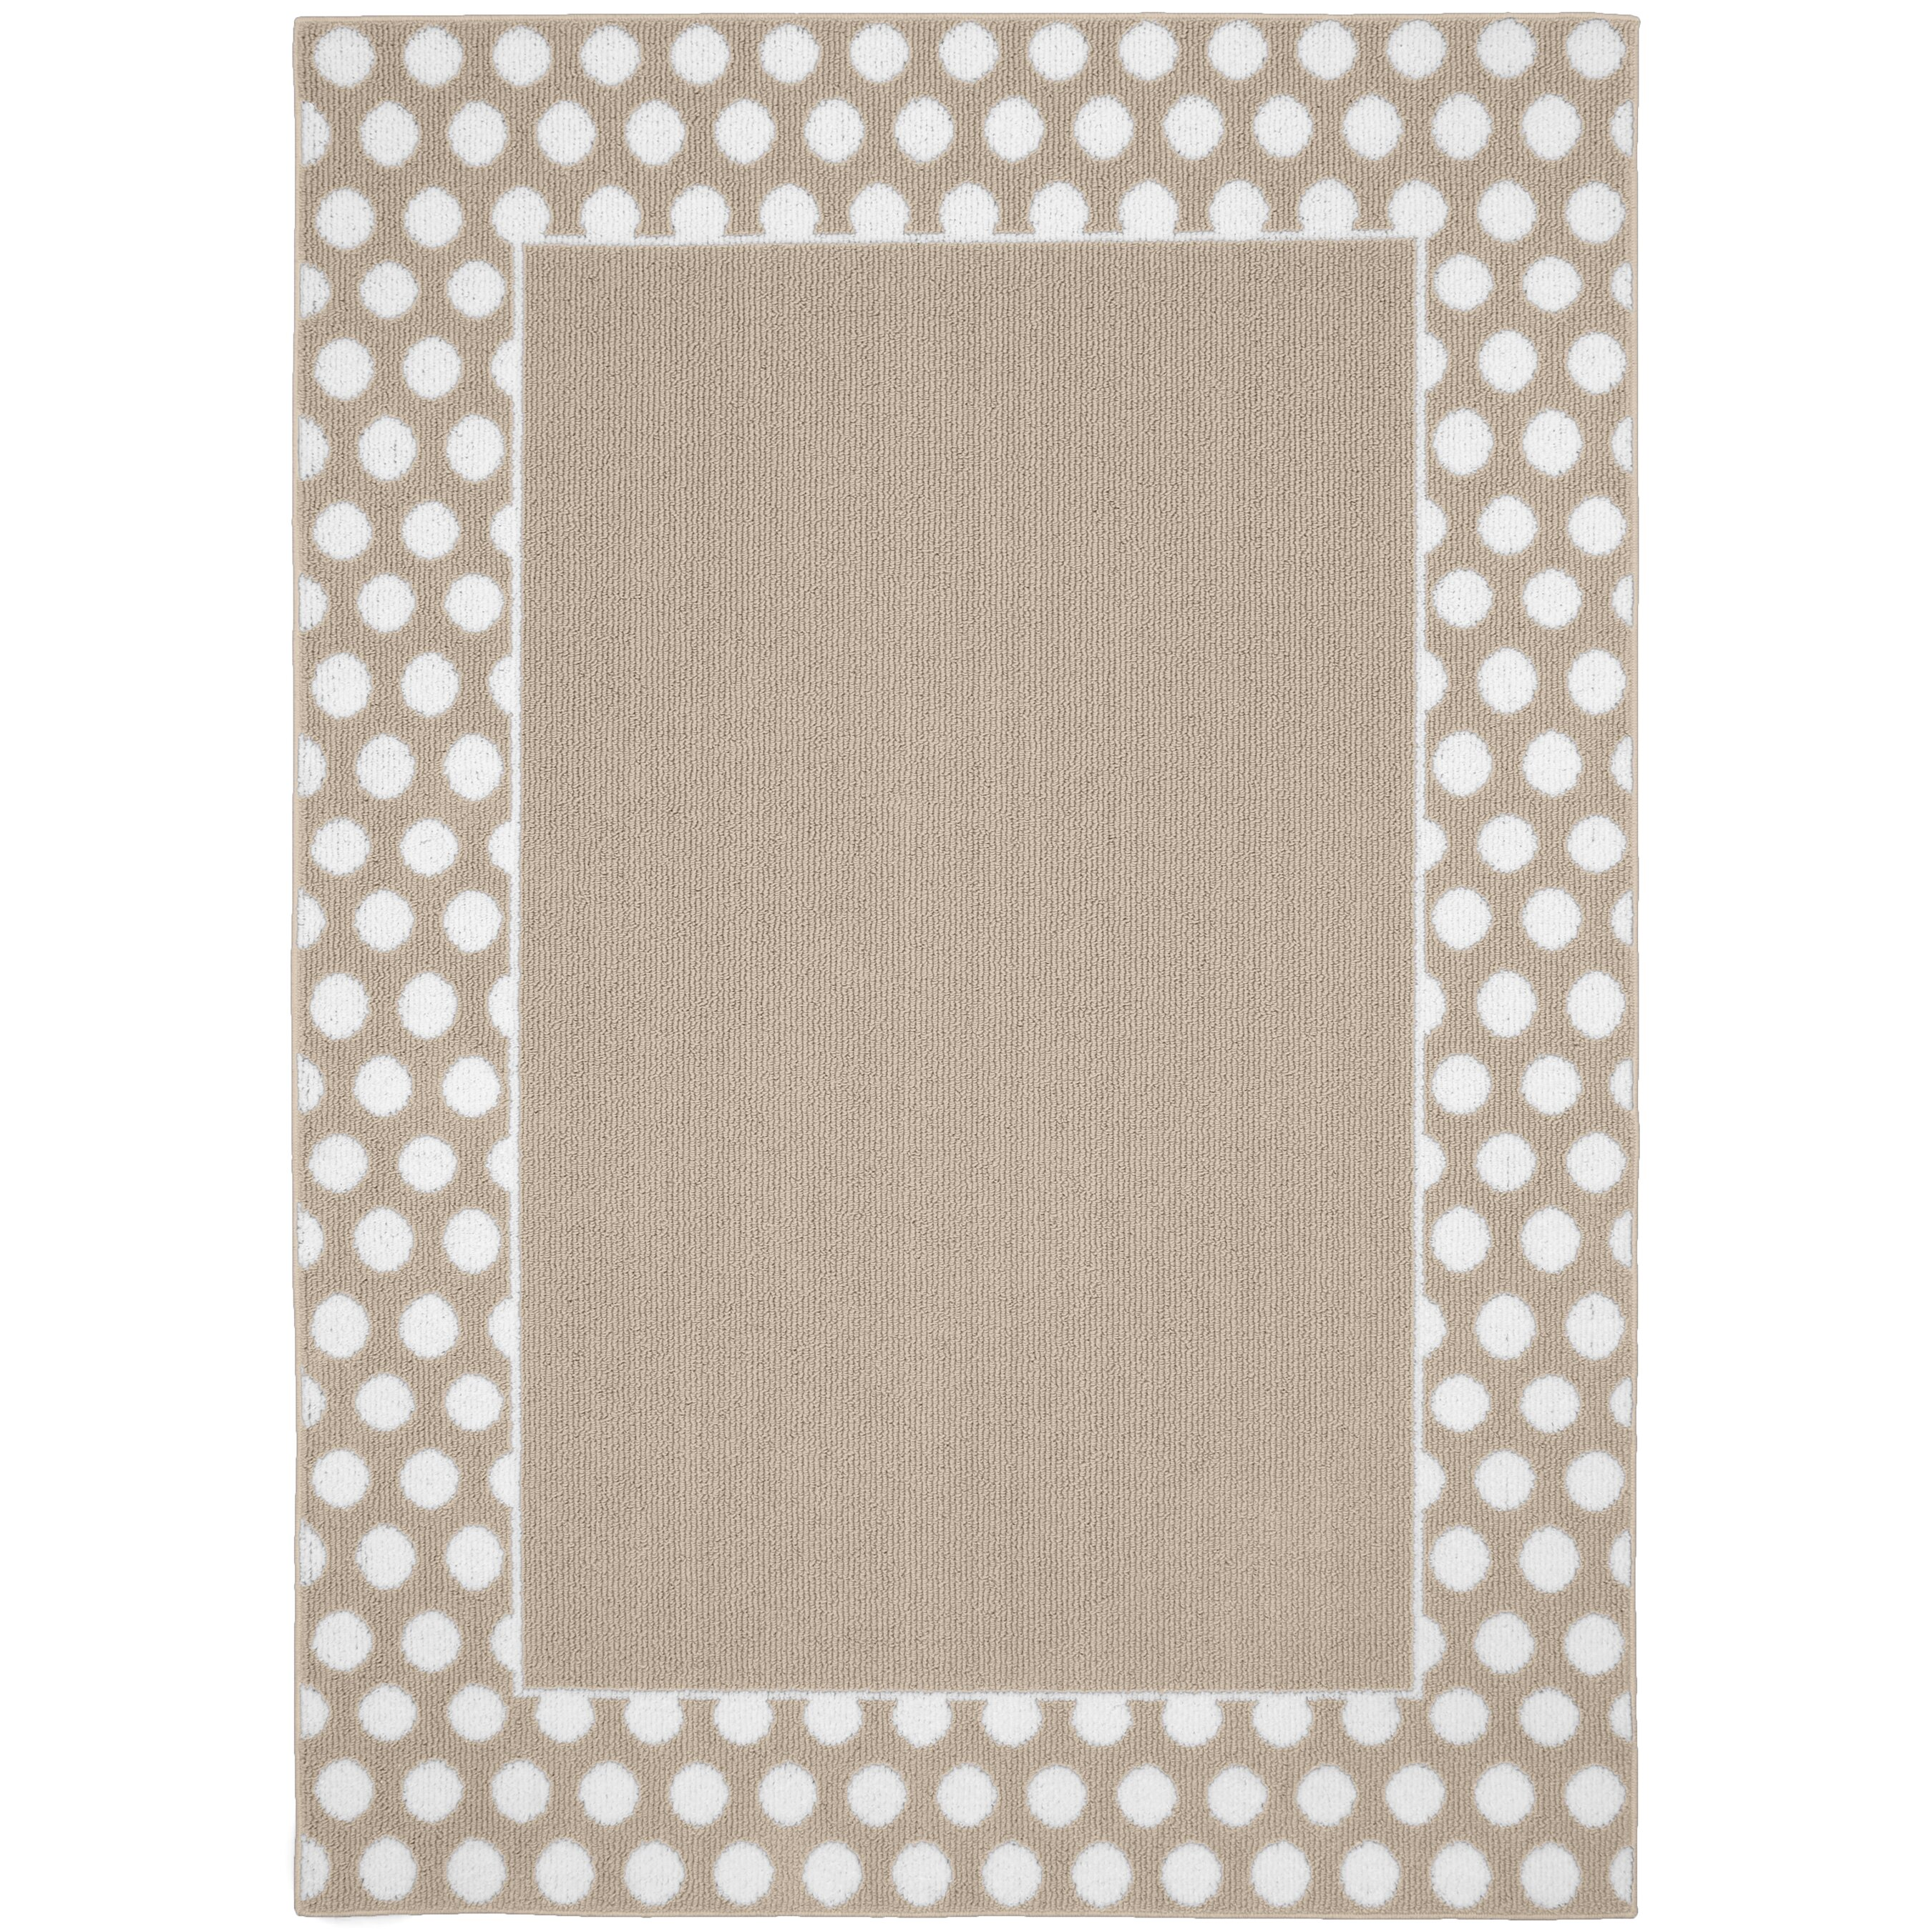 Garland Rug Polka Dot Frame Tan/White Area Rug